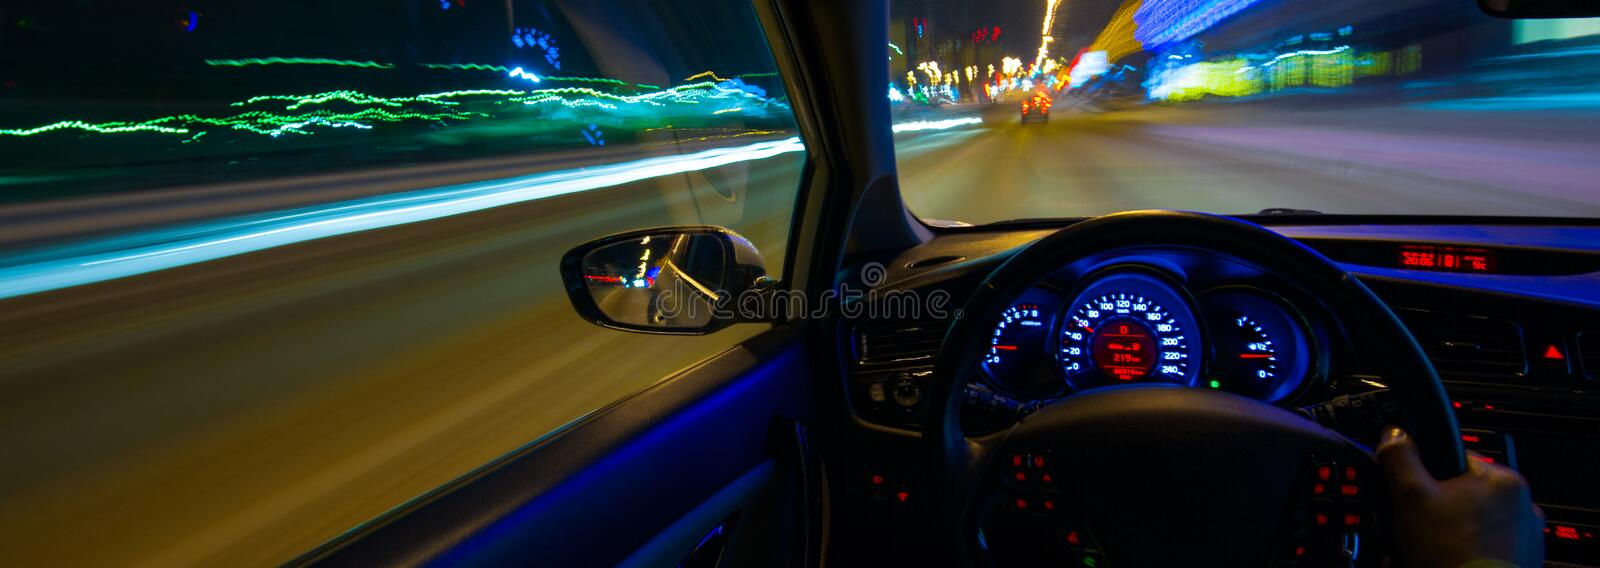 Movement of the car at night at a speed view from the interior, Brilliant road with lights with a car at high speed. The car`s movement at night with a kind of royalty free stock image